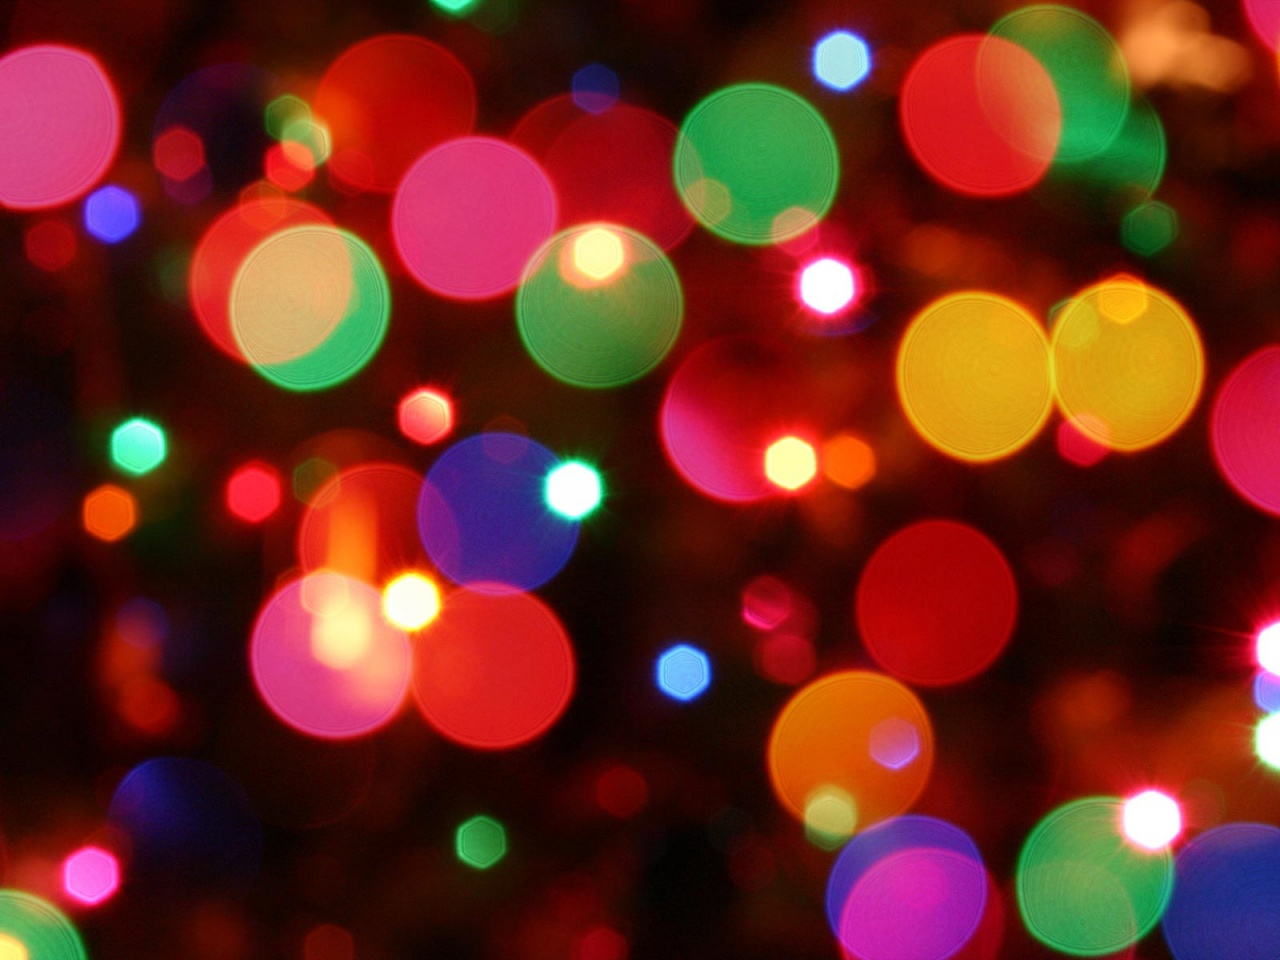 holiday-lights-wallpapers_16475_1280x960